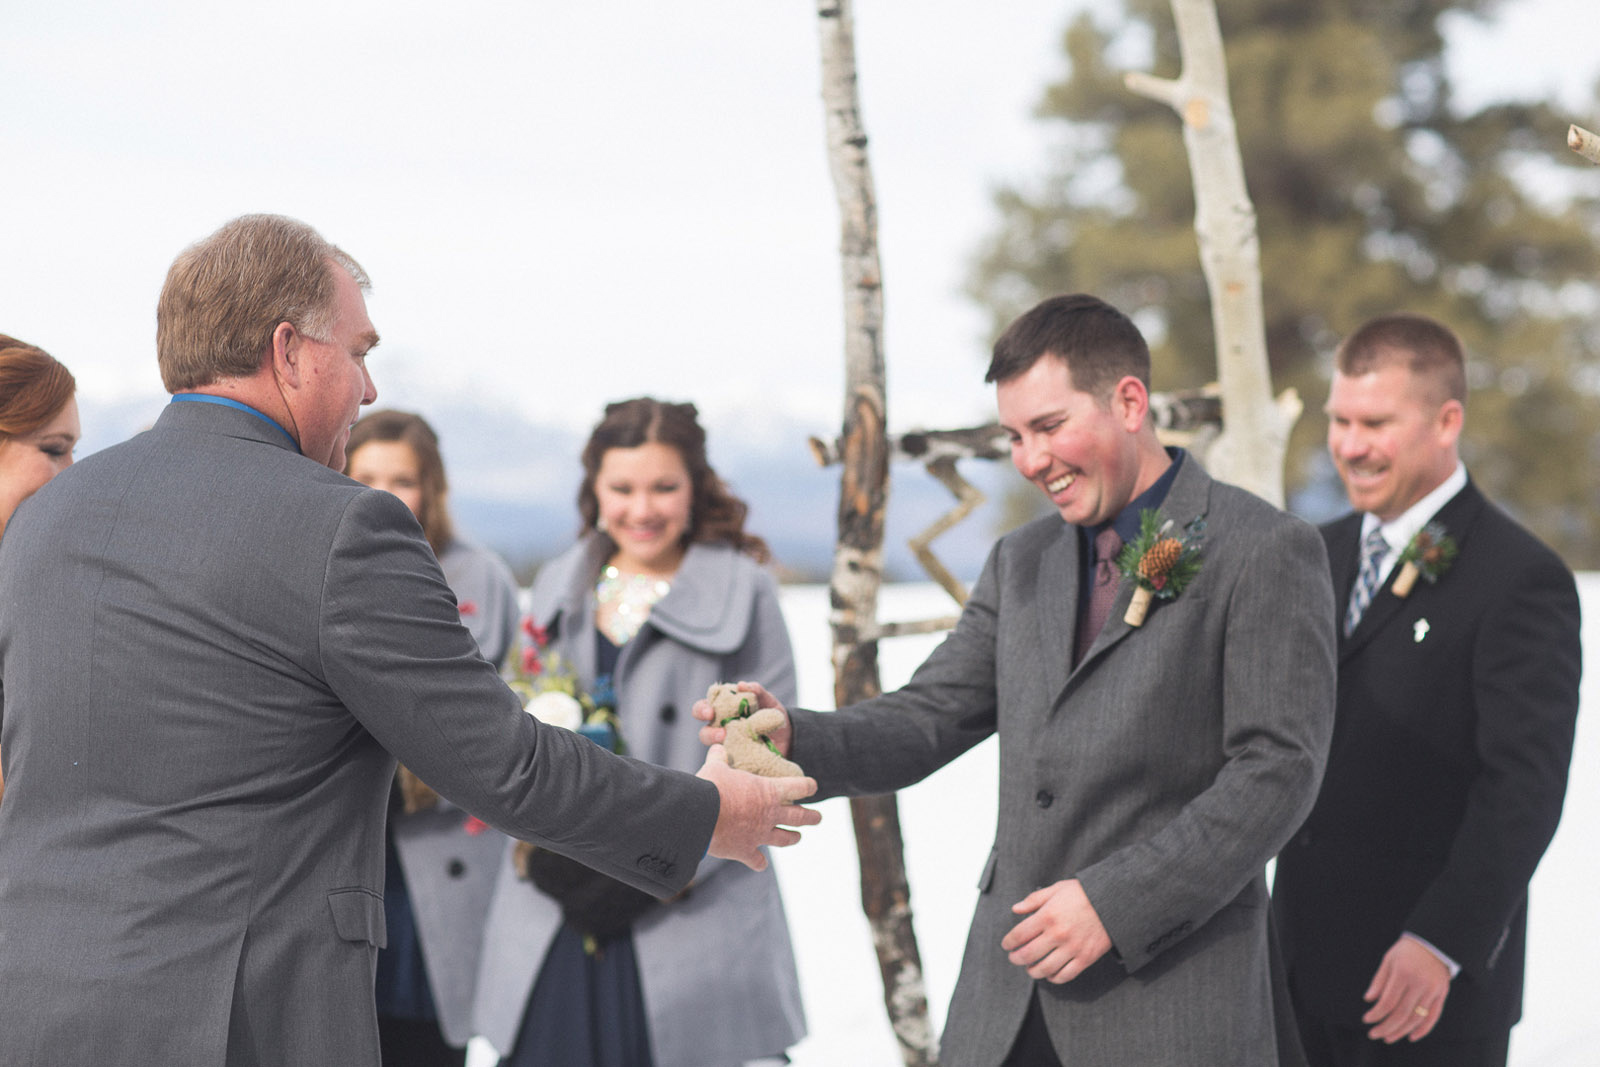 101-wedding-ceremony-in-pagosa-springs-wedding-photographer-snow-winter-wedding